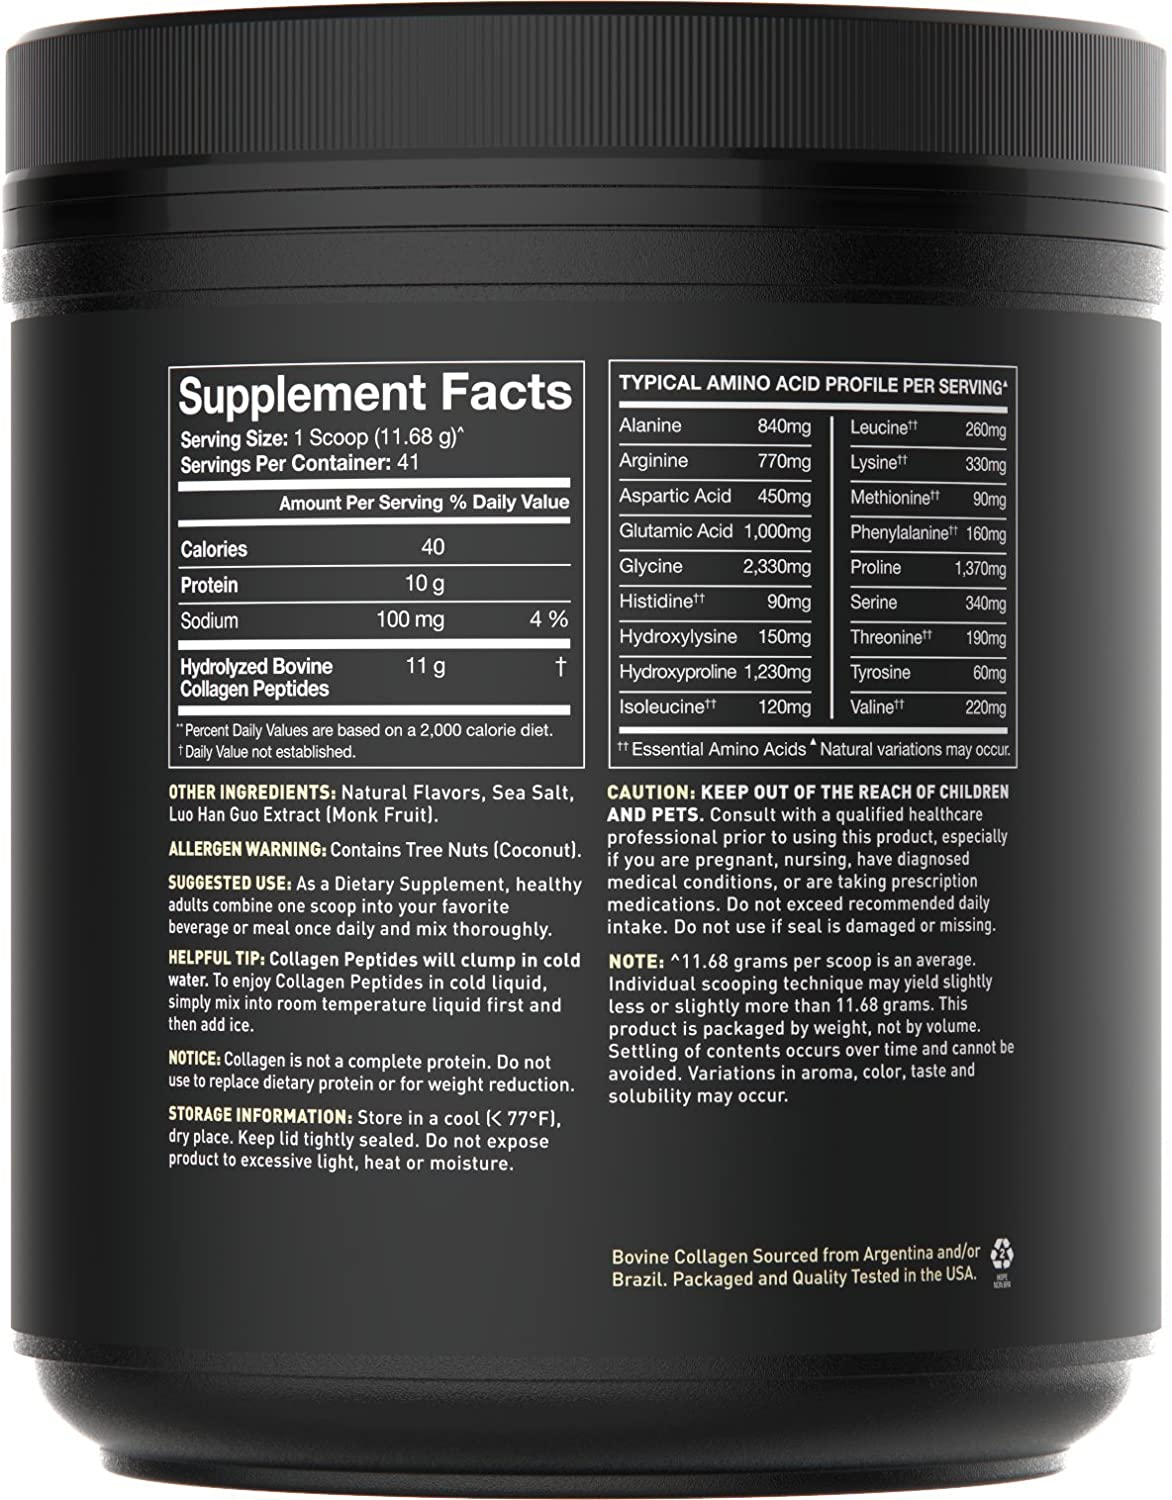 Collagen Peptides Powder 41 Servings  The Only NonGMO Verified Hydrolyzed Collagen Peptides Brand